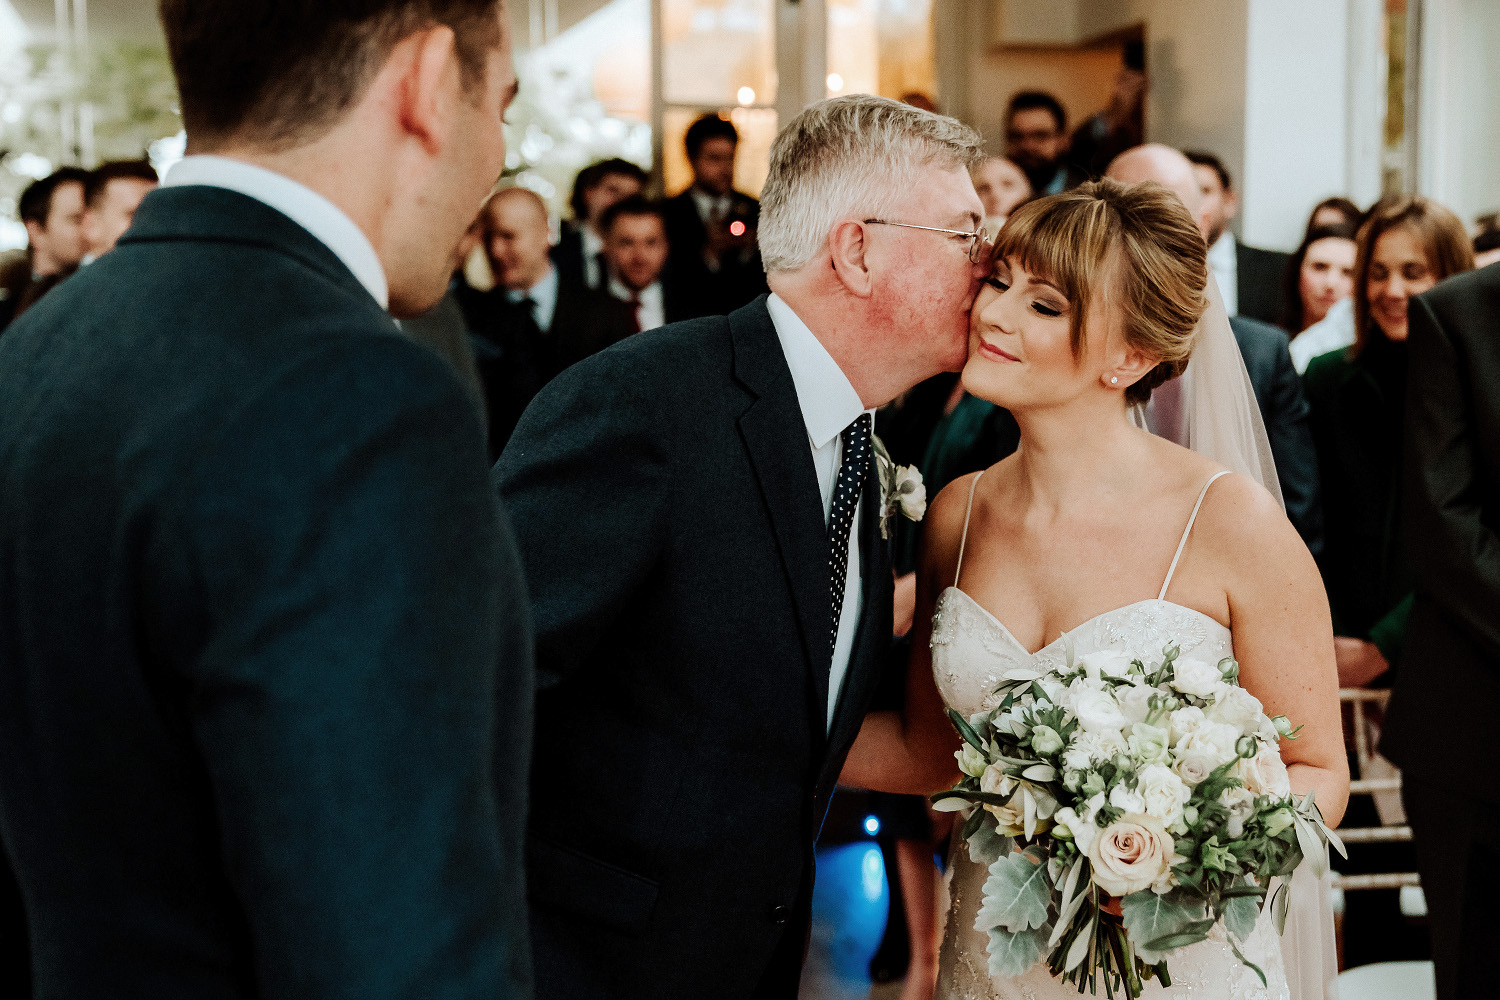 father of the bride kisses bride on cheek